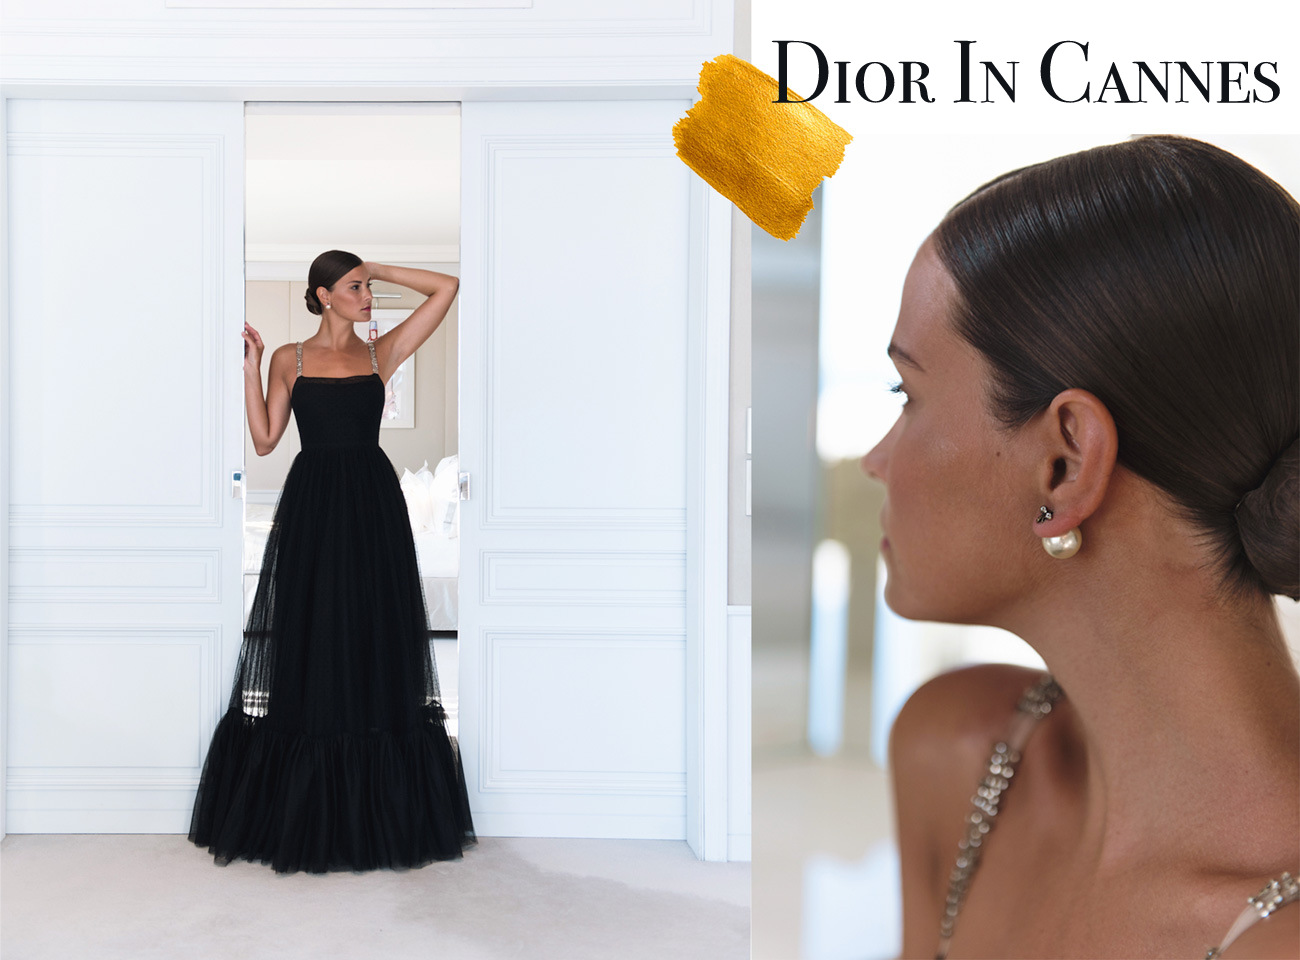 dior-haute-couture-tulle-dress-black-maxi-kleid-fashiioncarpet